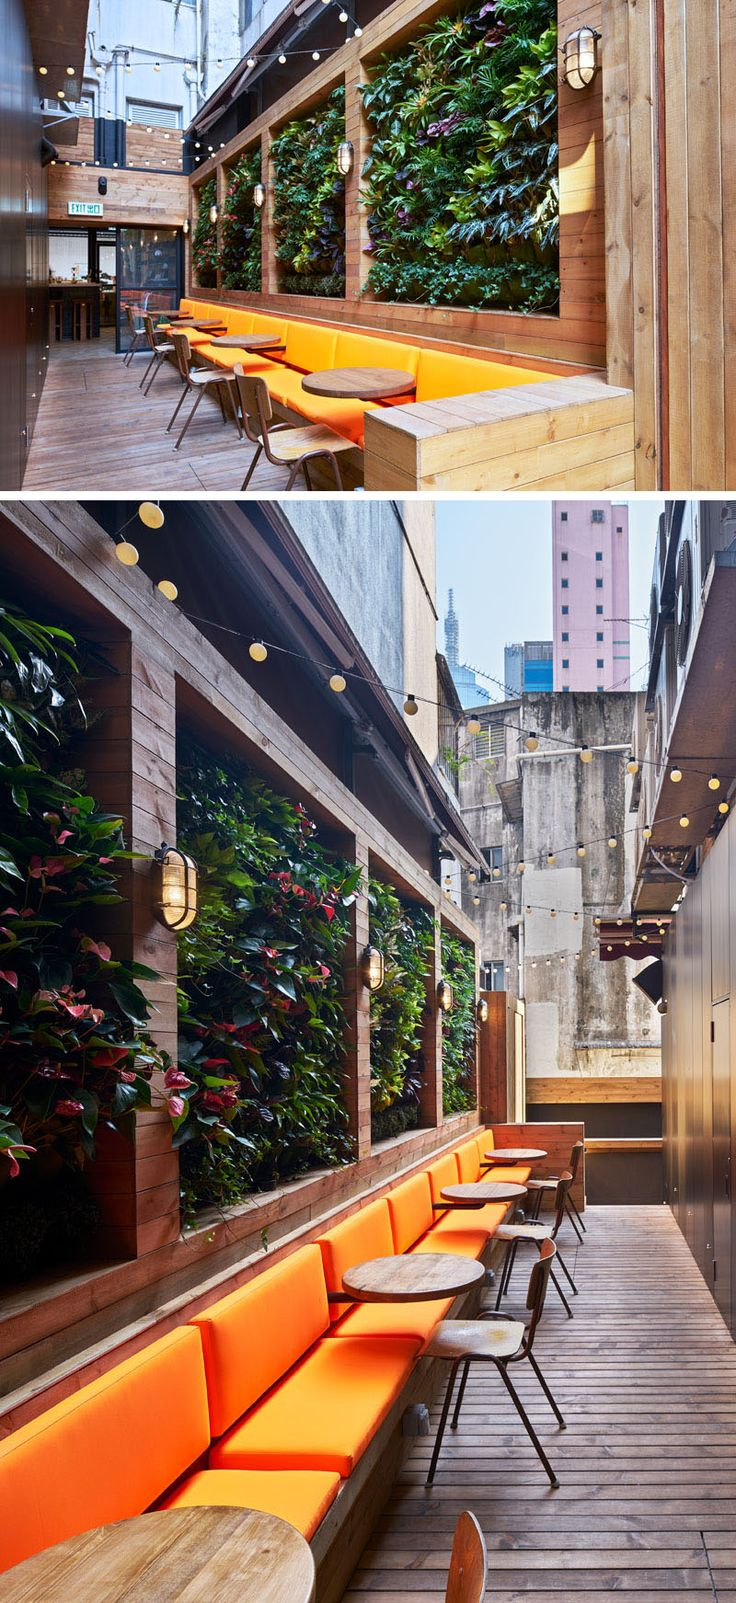 313 best design for caf and store images on pinterest elephant grounds have opened their latest coffee shop in hong kong mozeypictures Image collections